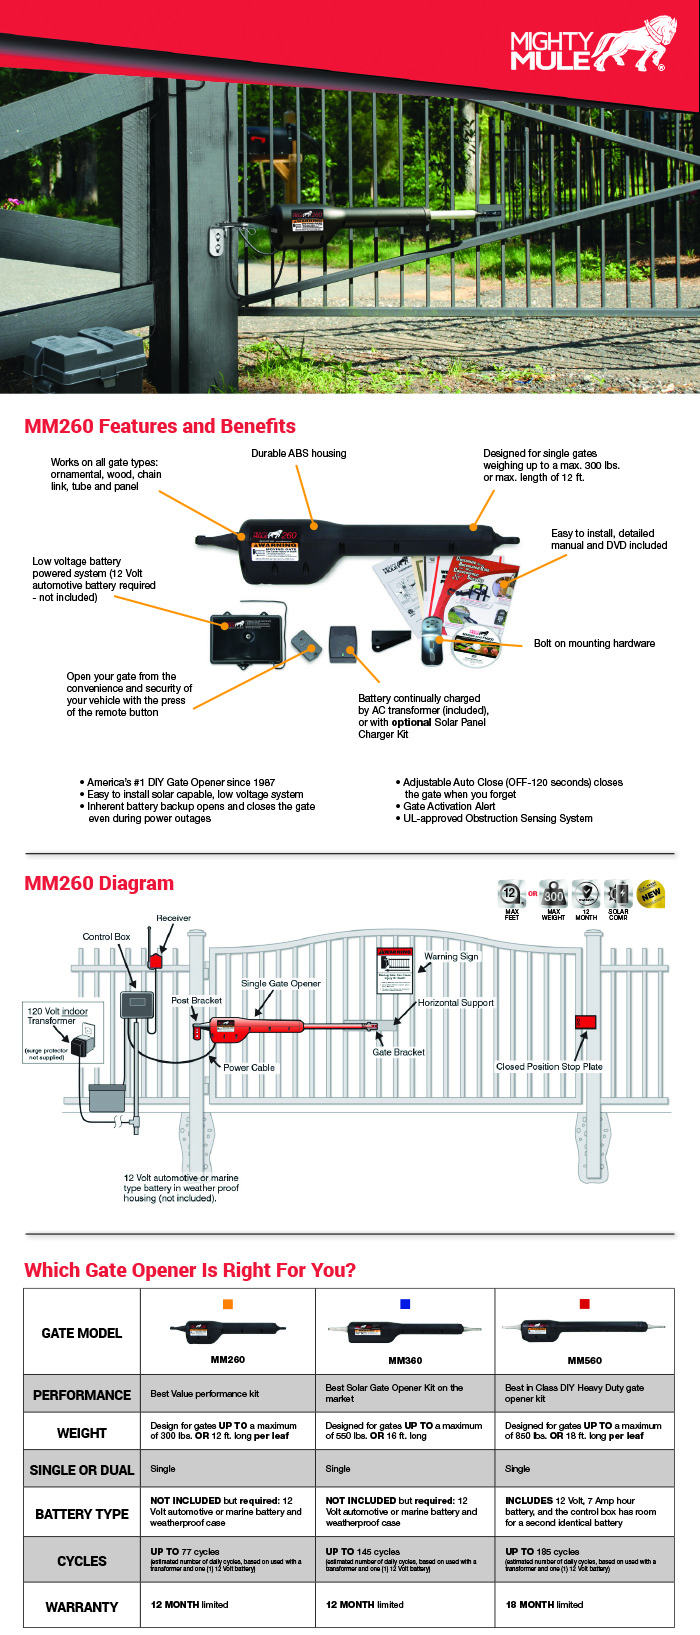 mighty mule light duty single swing automatic gate opener mm260 info guides installation guide